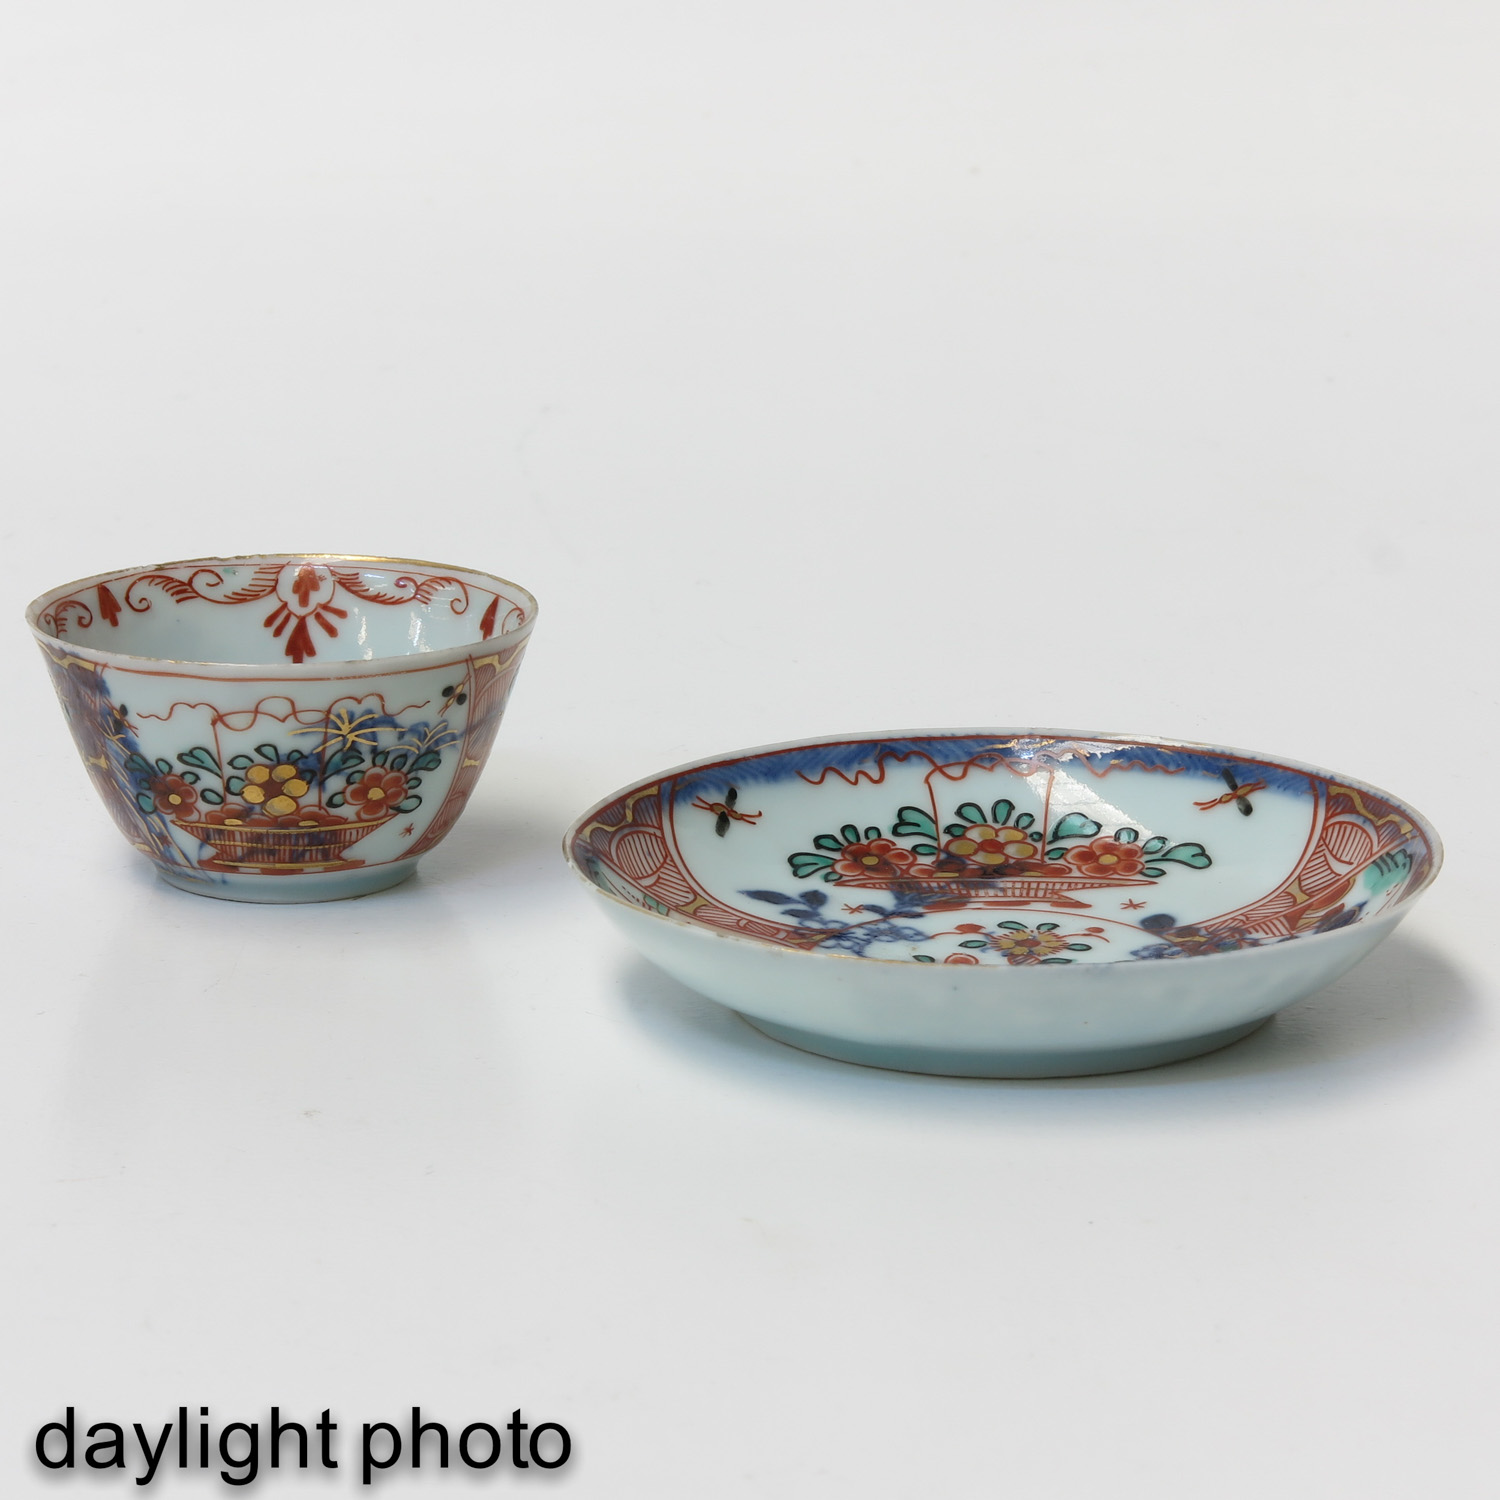 A Series of 6 Cups and Saucers - Image 9 of 10